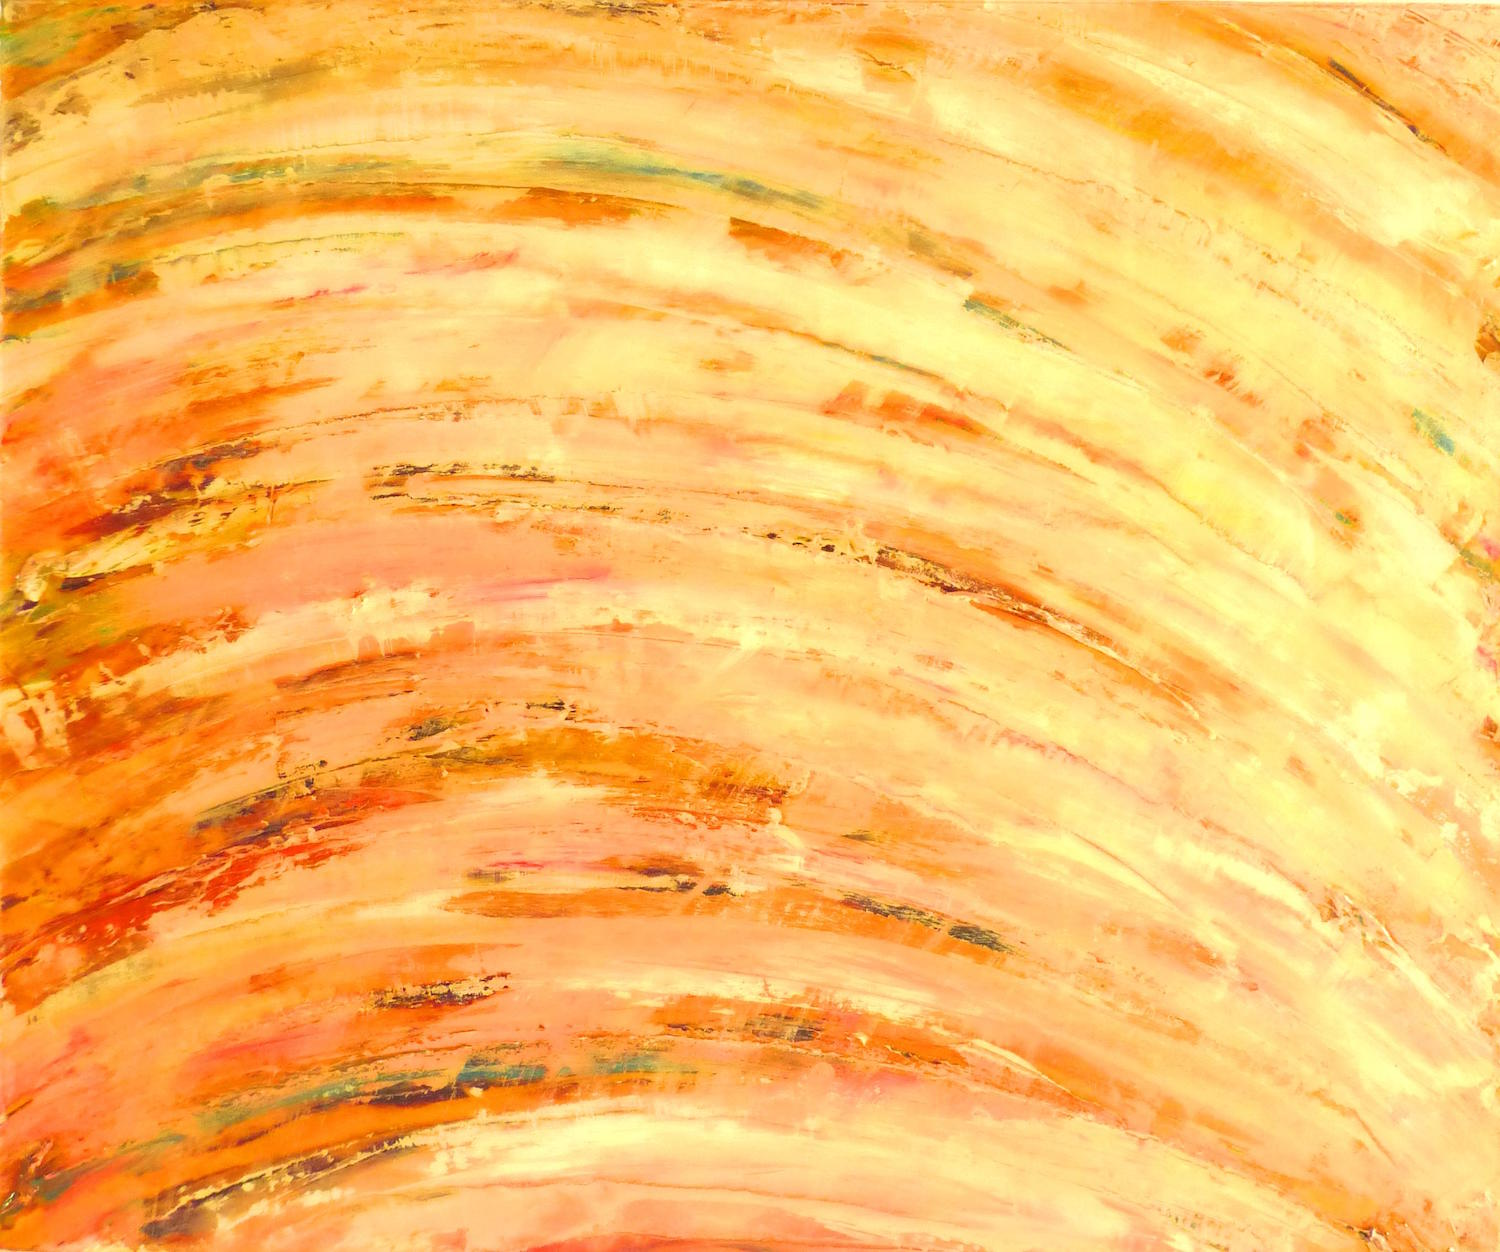 Tangerine Dream / Materials: Pulled oil paint with palette knife